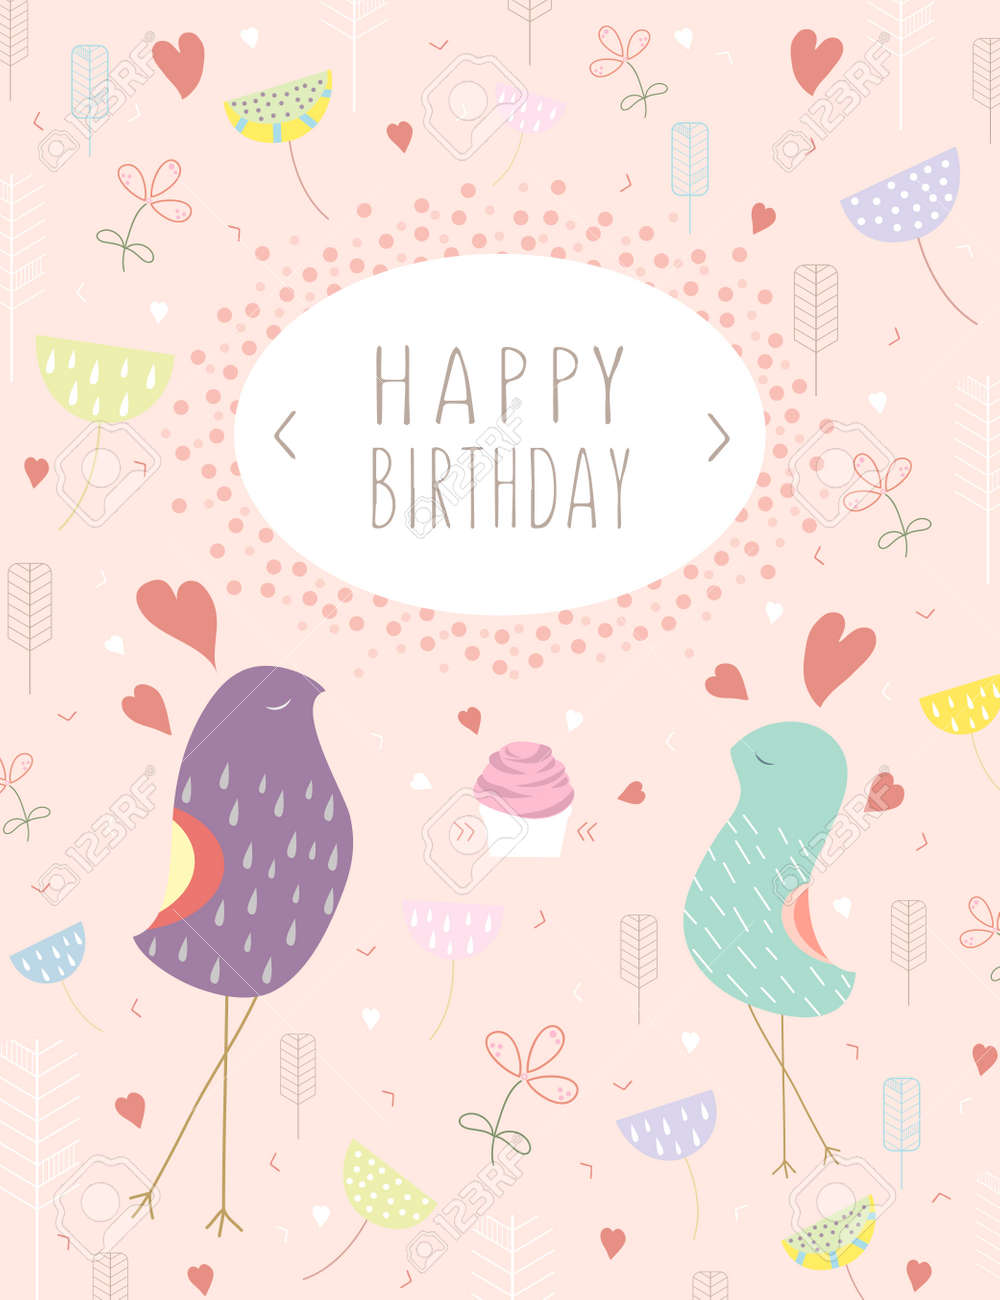 Happy Birthday Card Vector Image 41928564 happy birthday – Birthday Cake Card Template